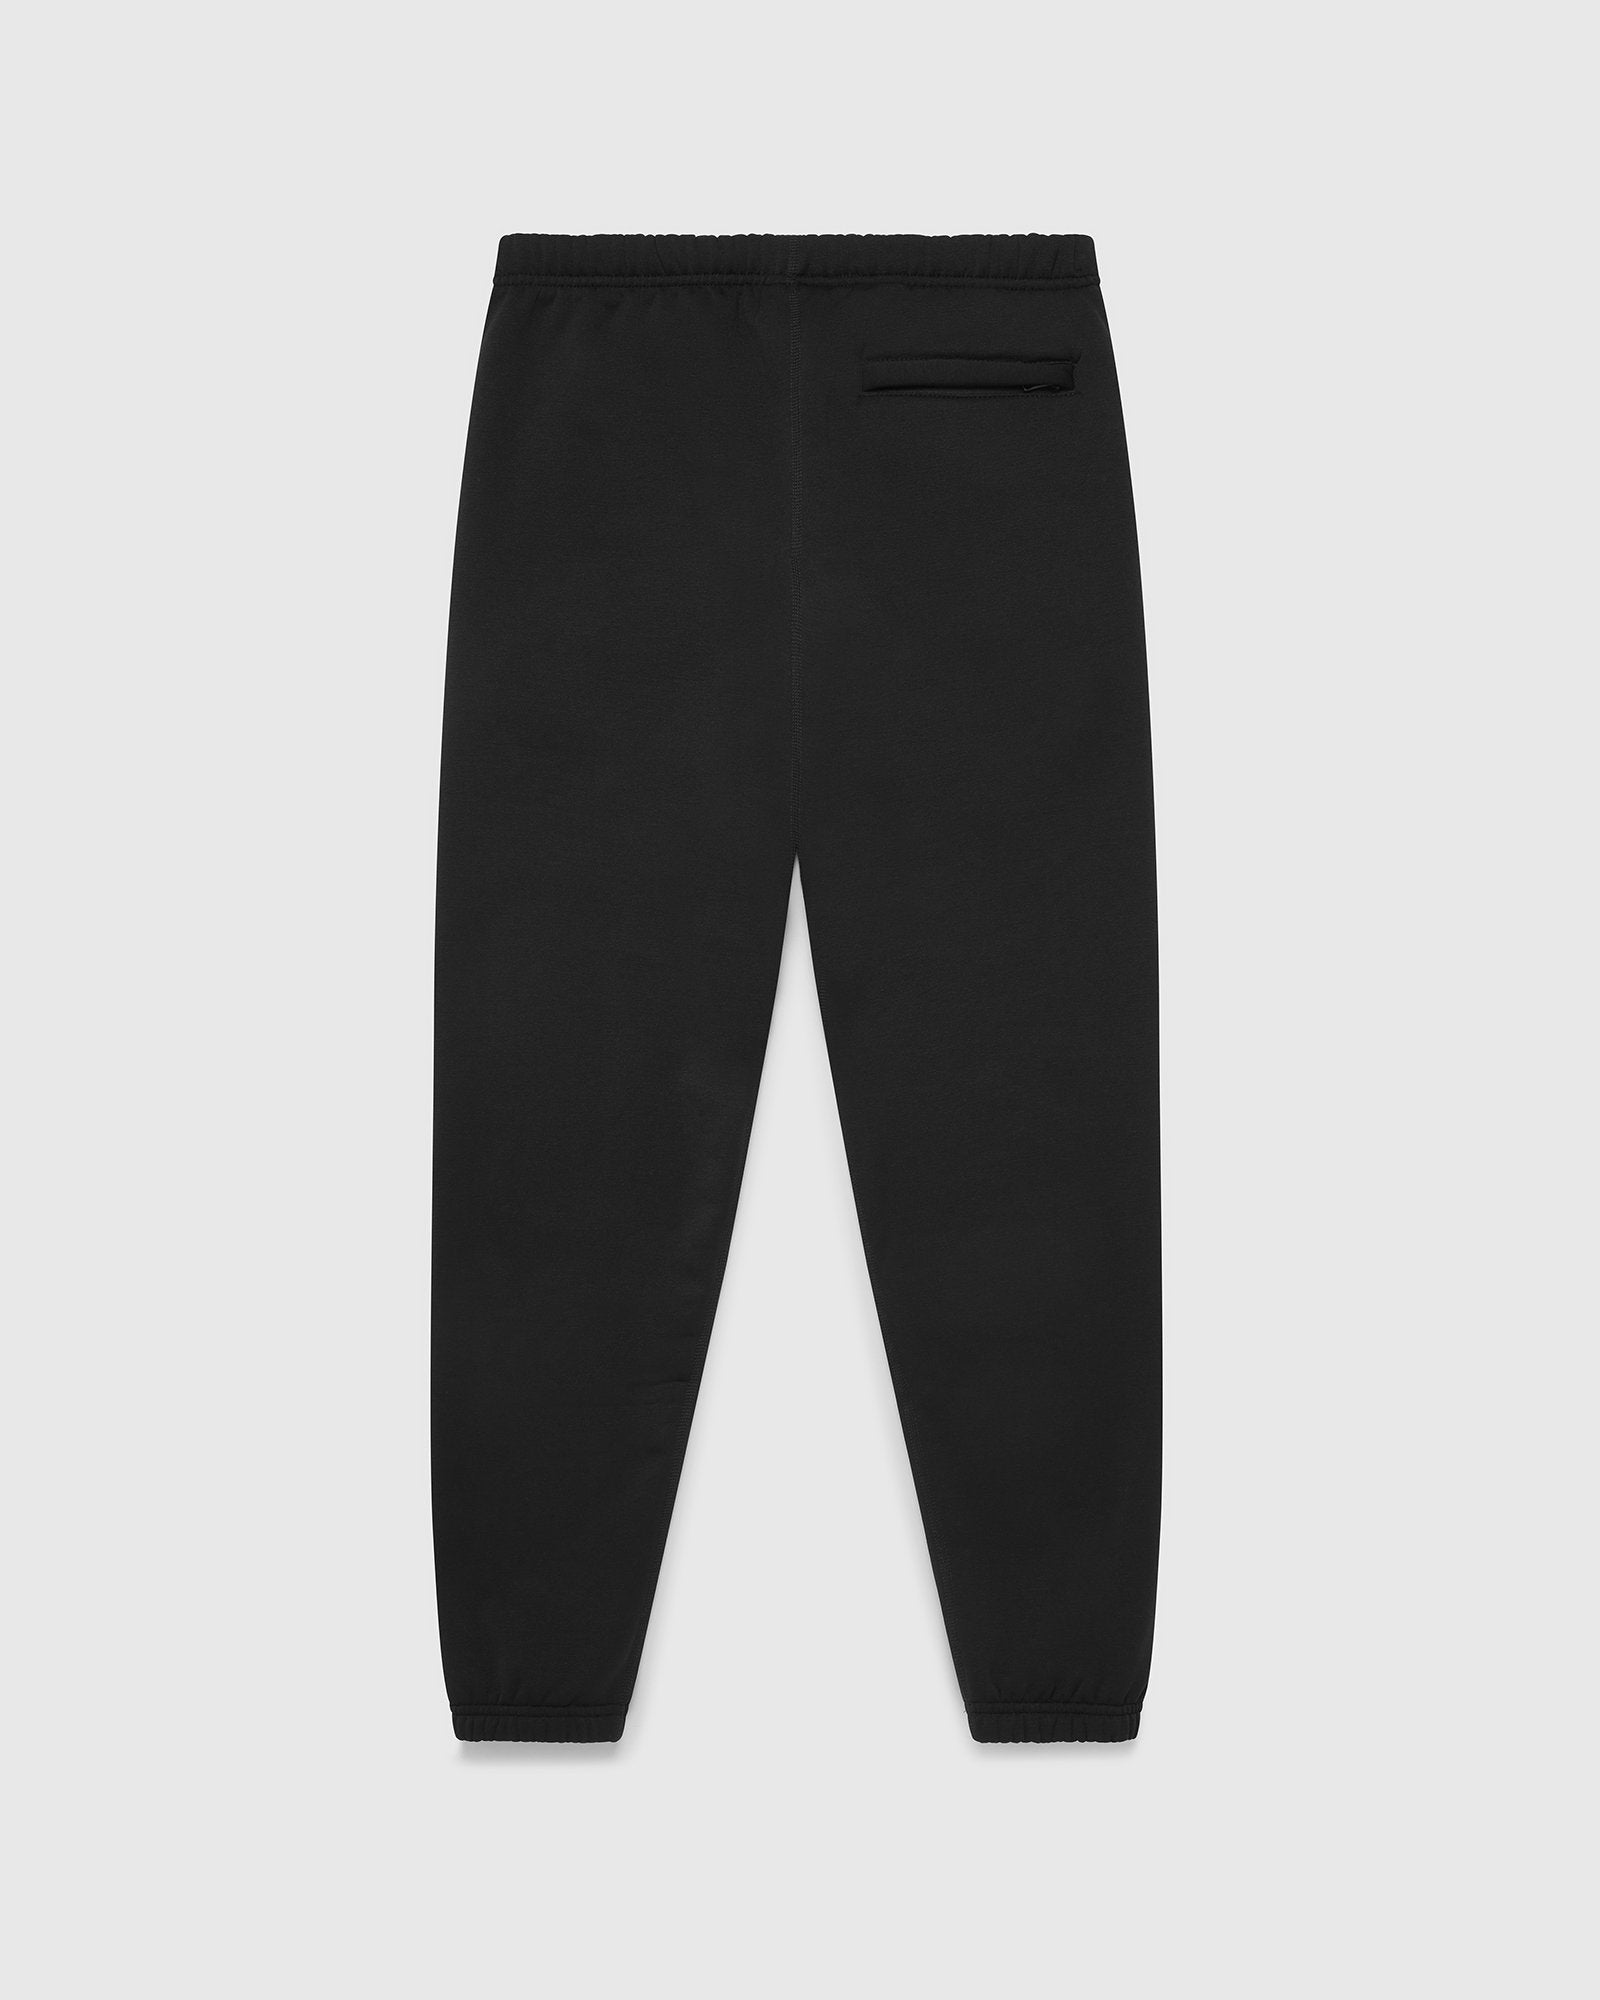 POLARTEC® POWER STRETCH SWEATPANT - BLACK IMAGE #2